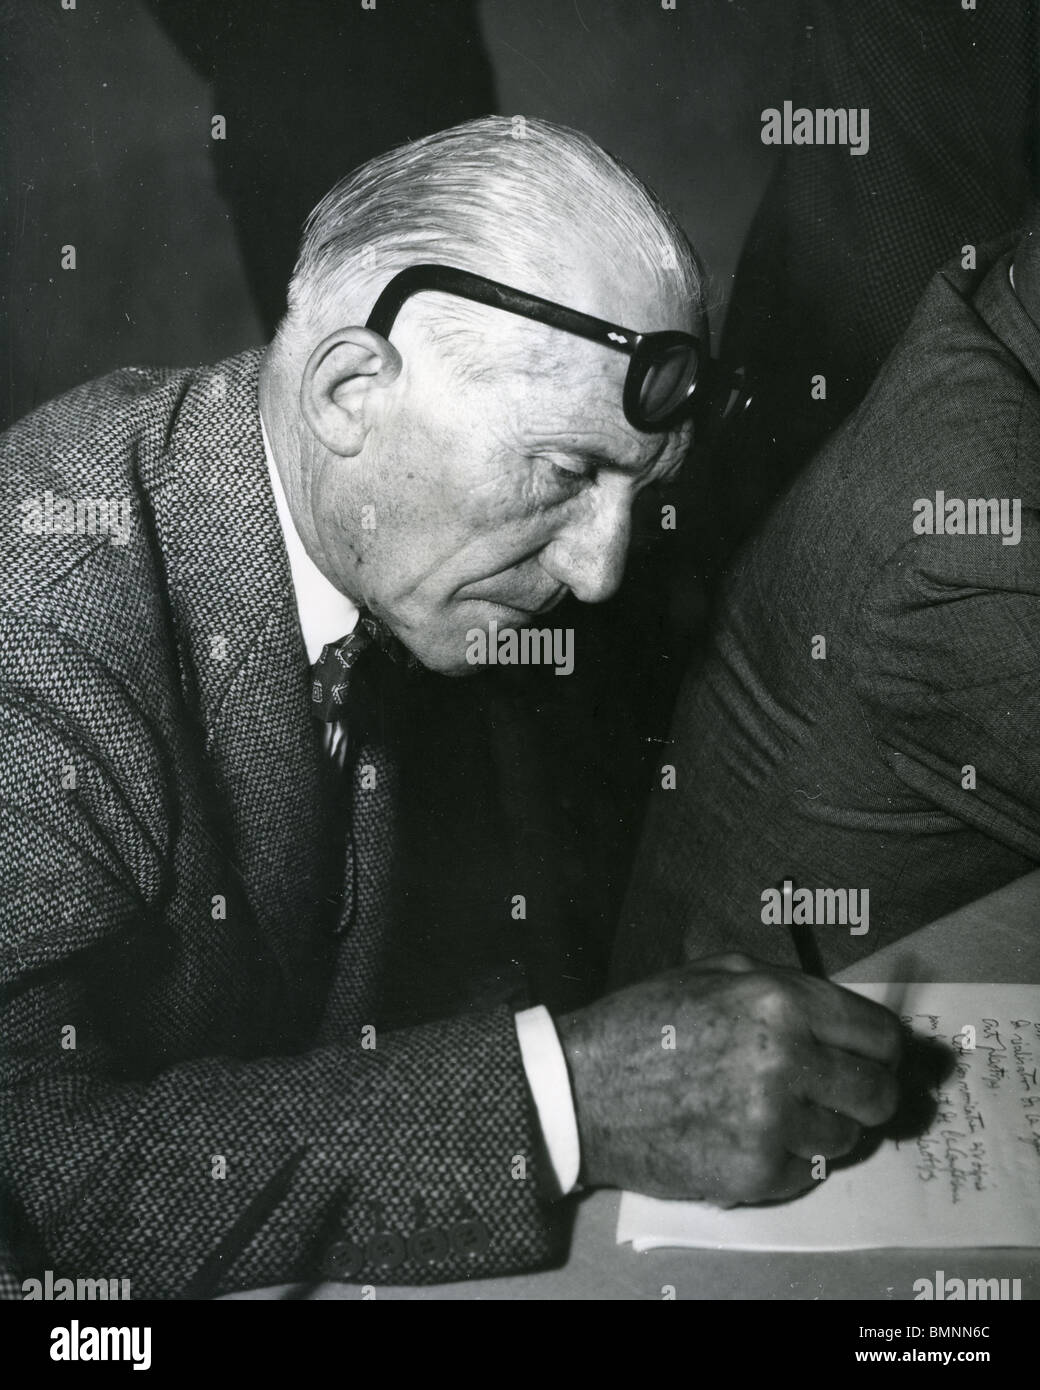 French Architect le corbusier - swiss-french architect in 1965 stock photo, royalty